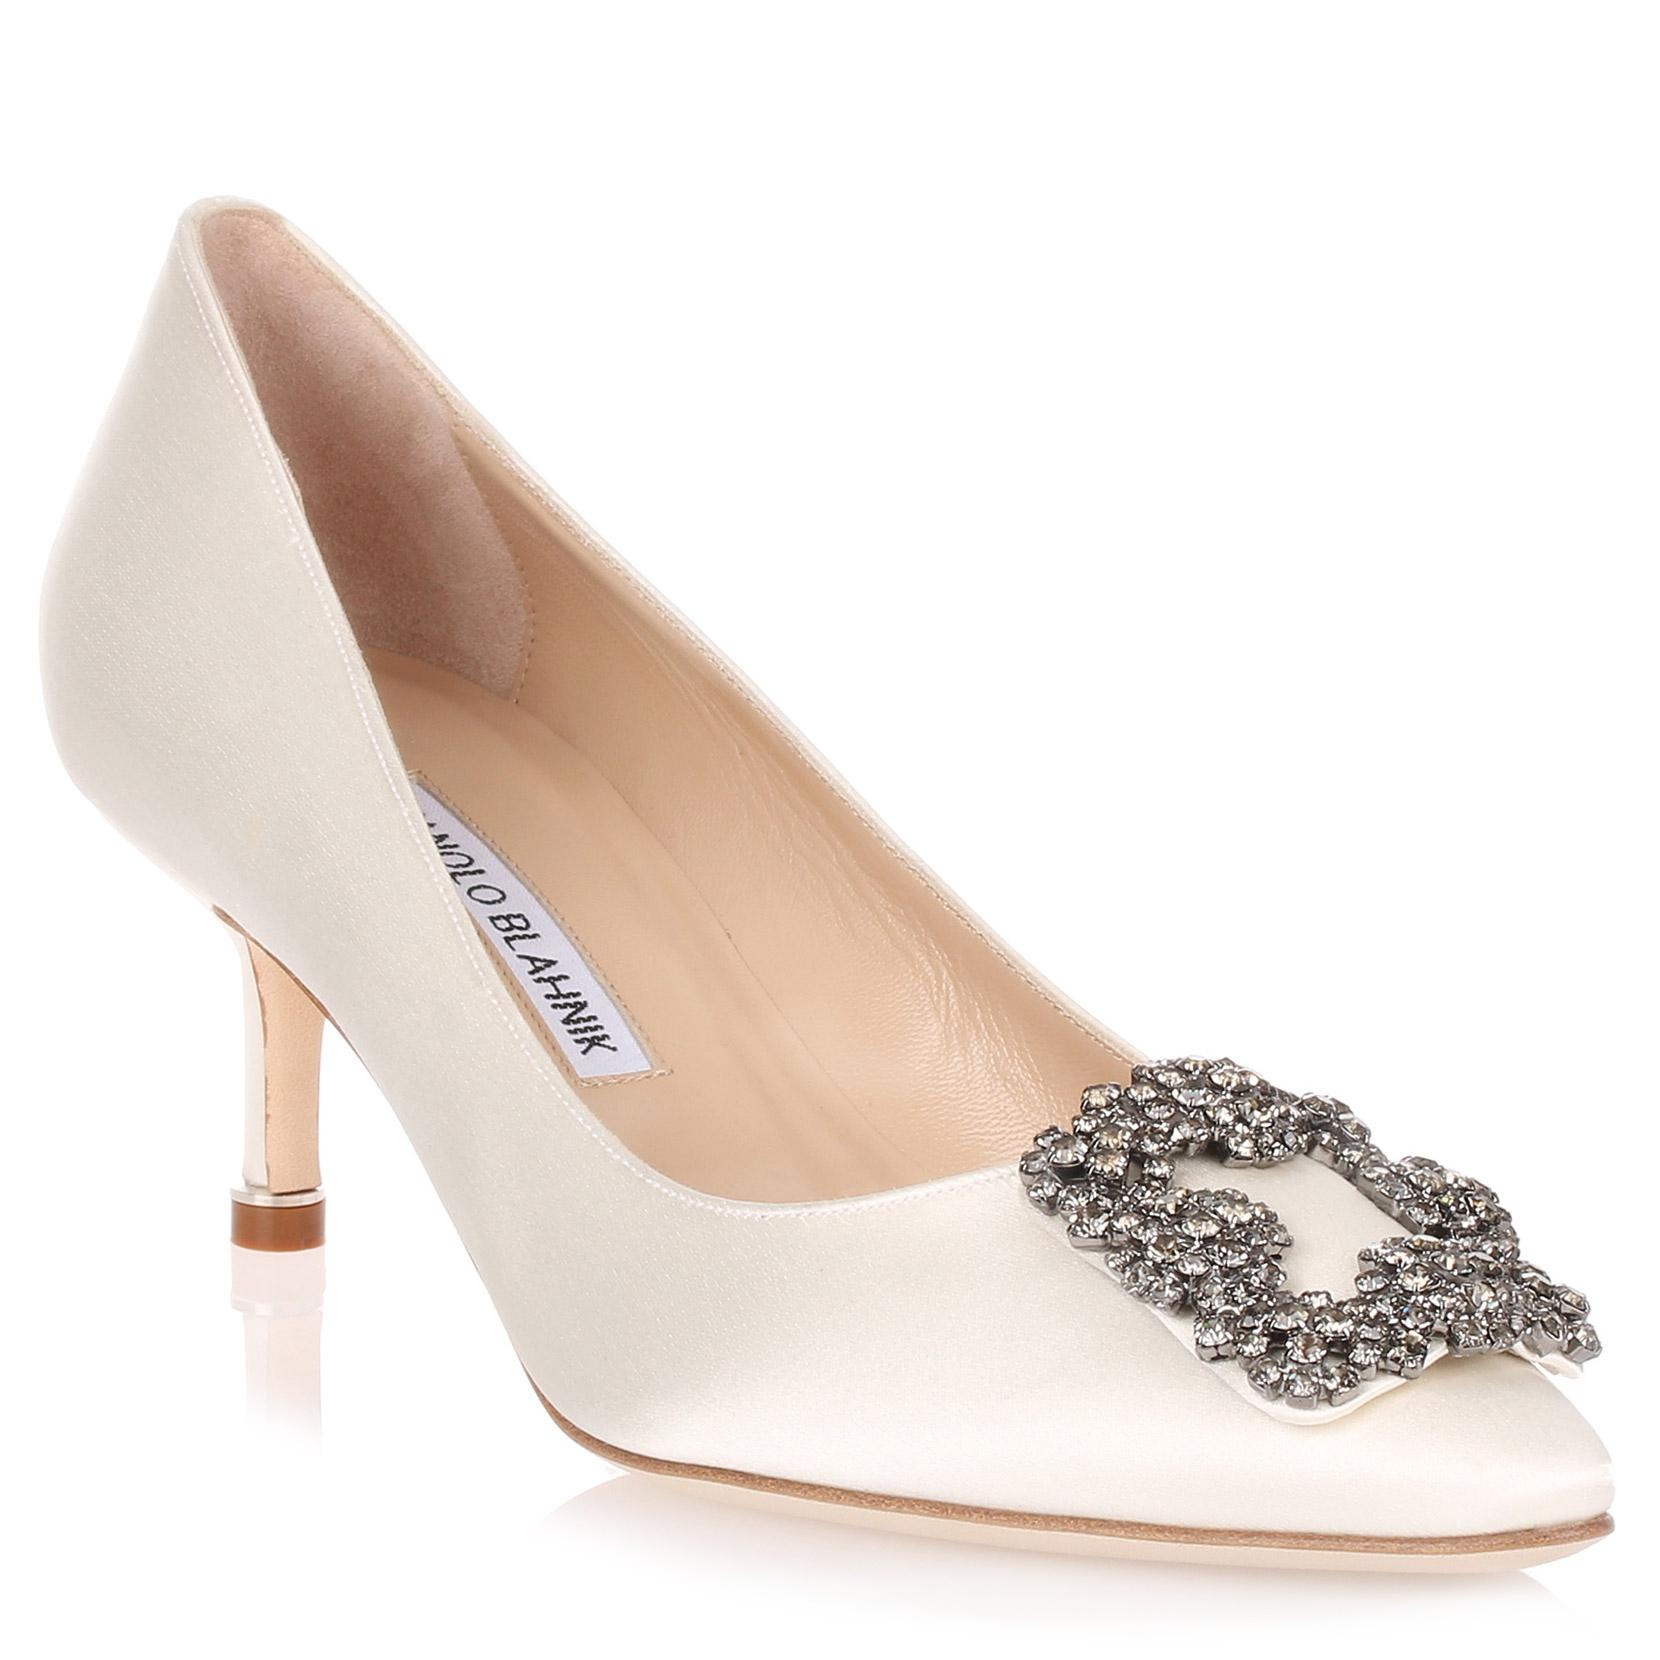 d51e71bff9f3 Manolo Blahnik Hangisi 50 Satin Pump Ivory Us in White - Save ...